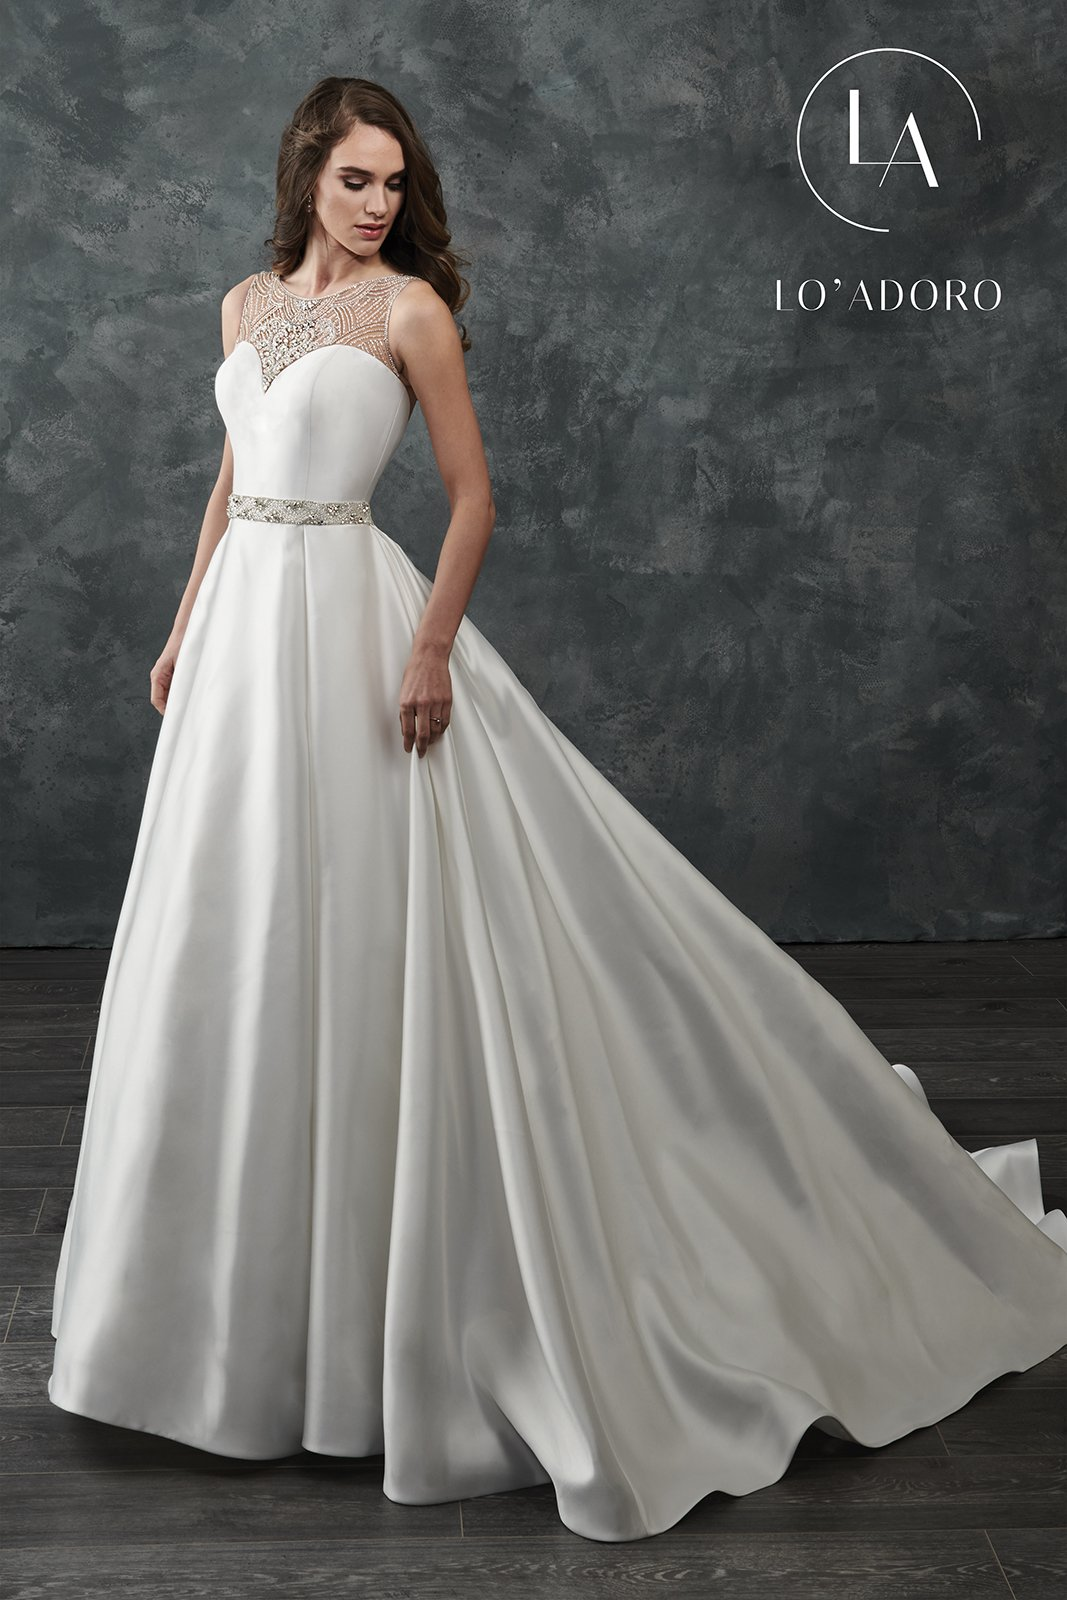 High Neckline Ball Gowns Lo' Adoro Bridal in Ivory Color